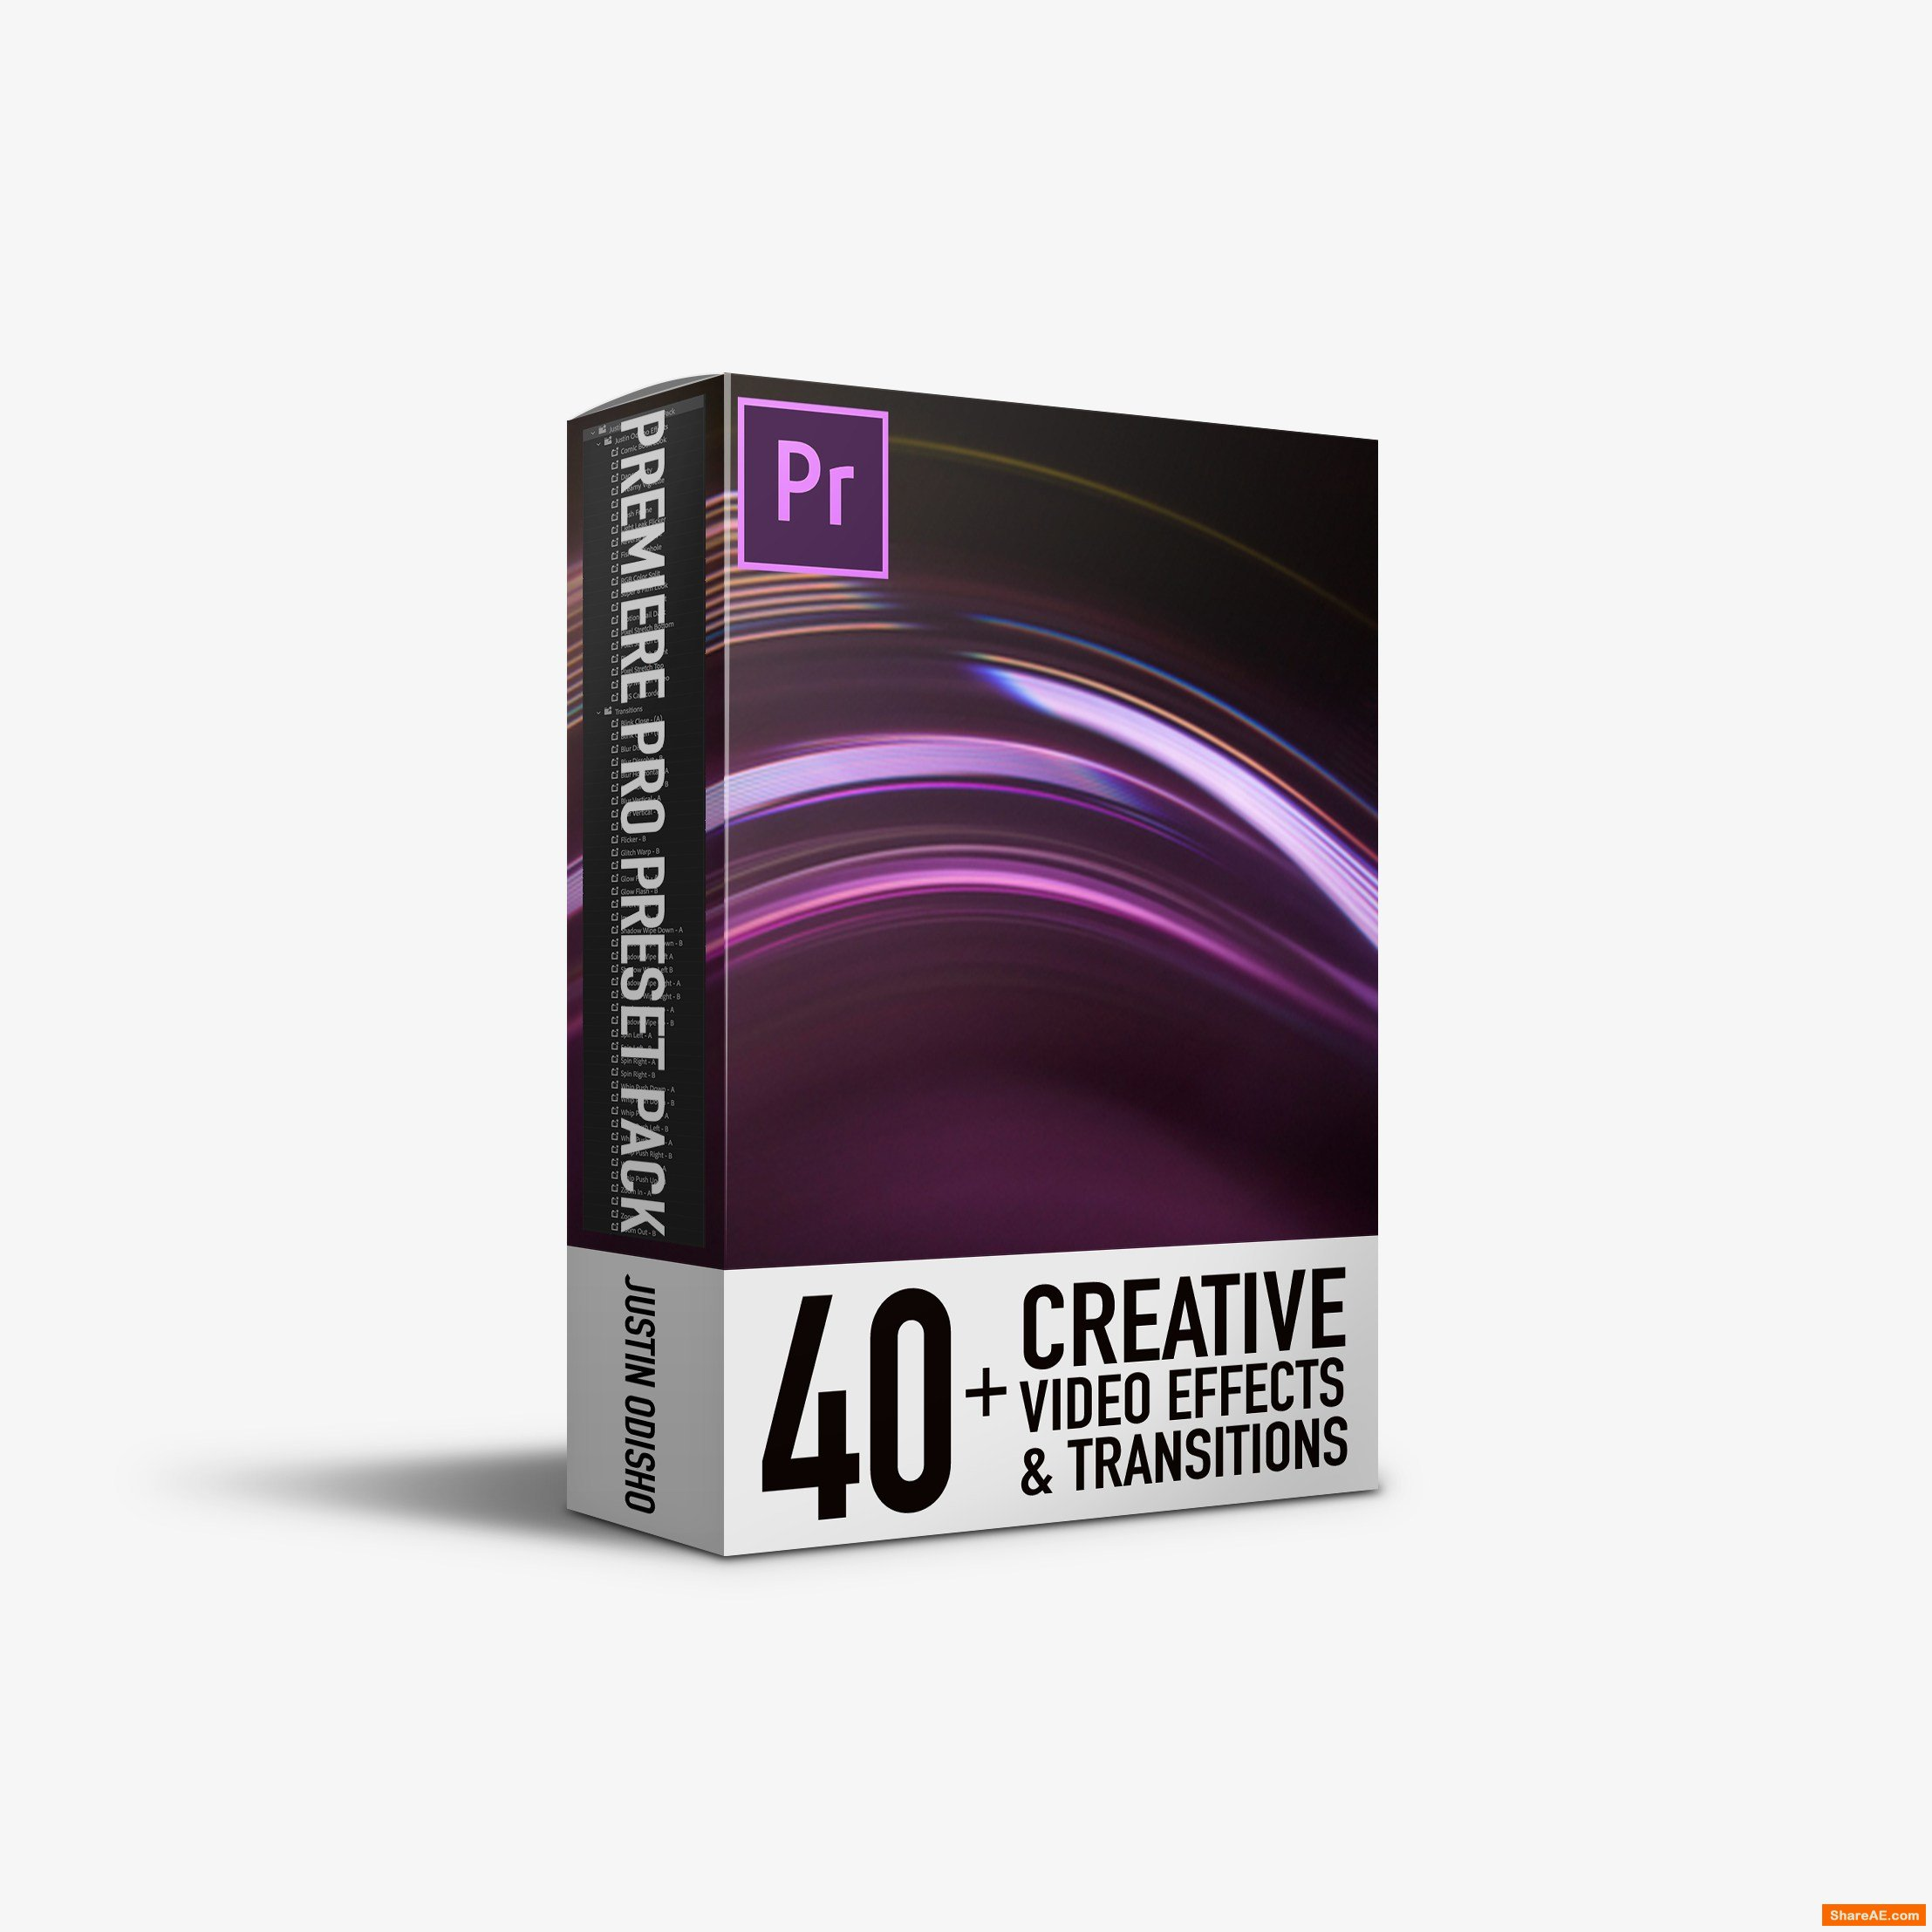 40+ Video Effects & Transitions - Adobe Premiere Pro Preset